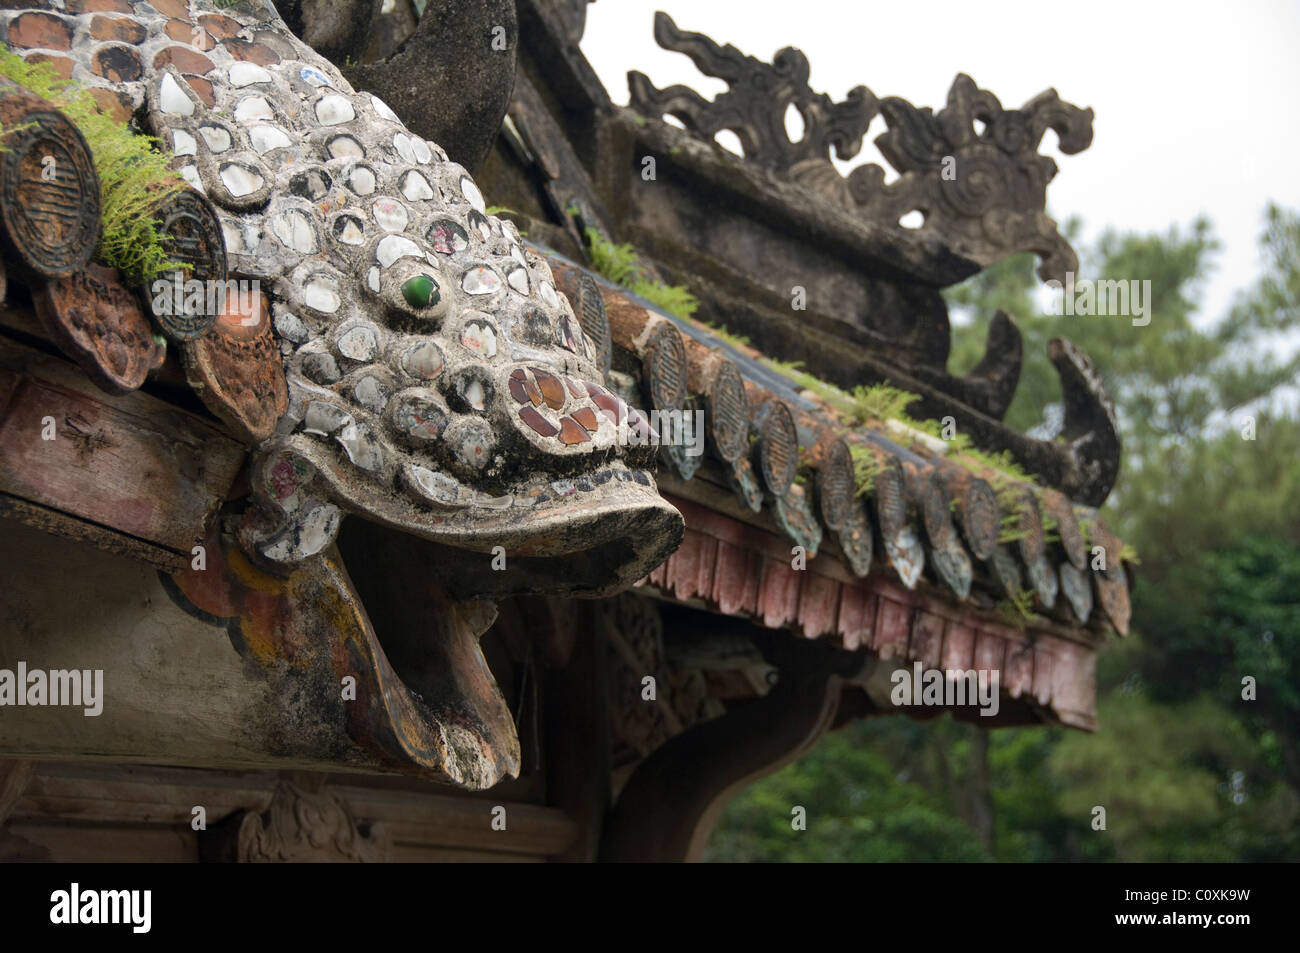 Asia, Vietnam, Da Nang. Old imperial capital city of Hue. Emperor Tu Duc's Tomb complex, roof detail. - Stock Image